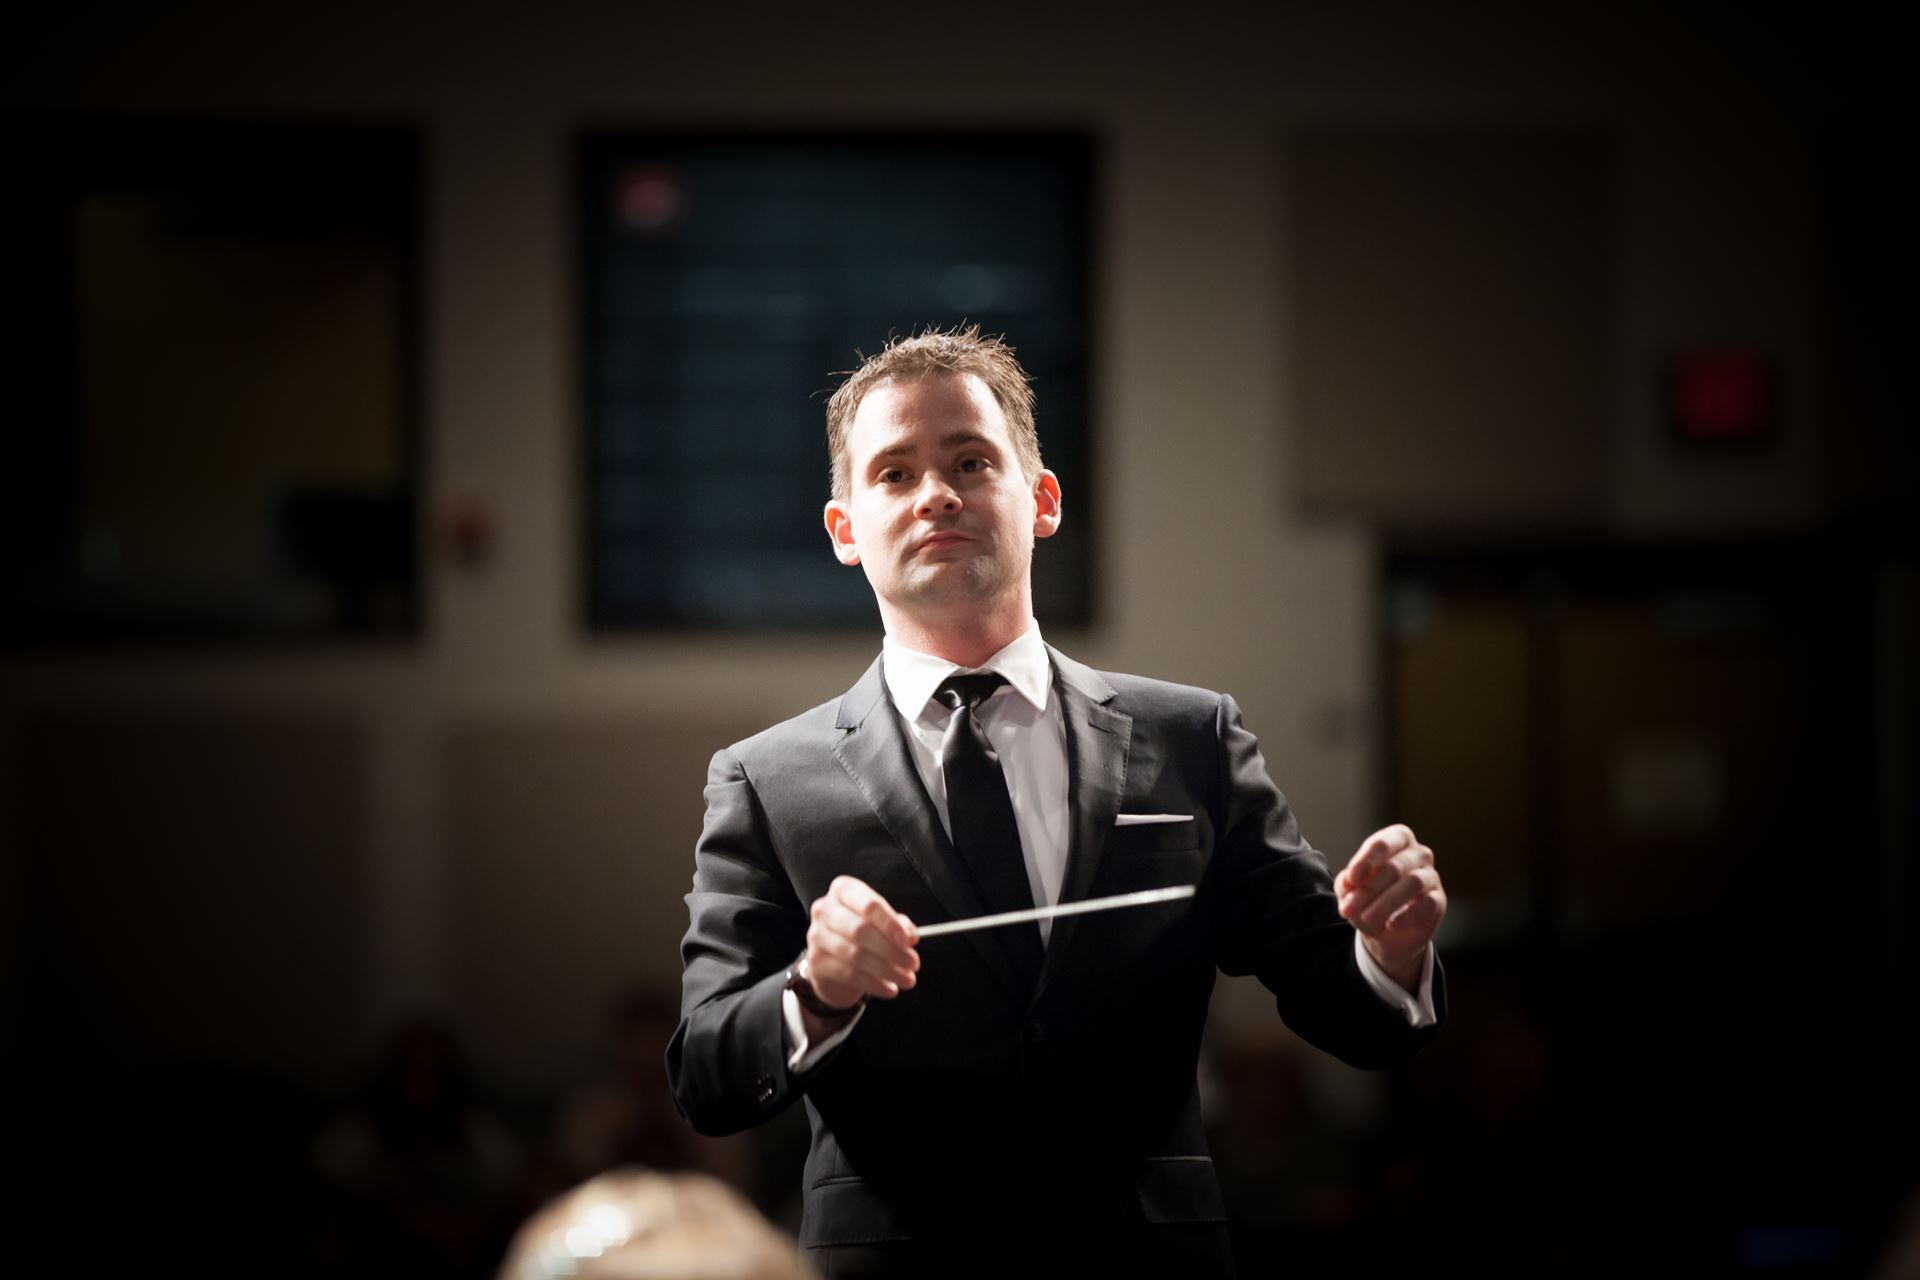 Conductor Chris Ramaekers